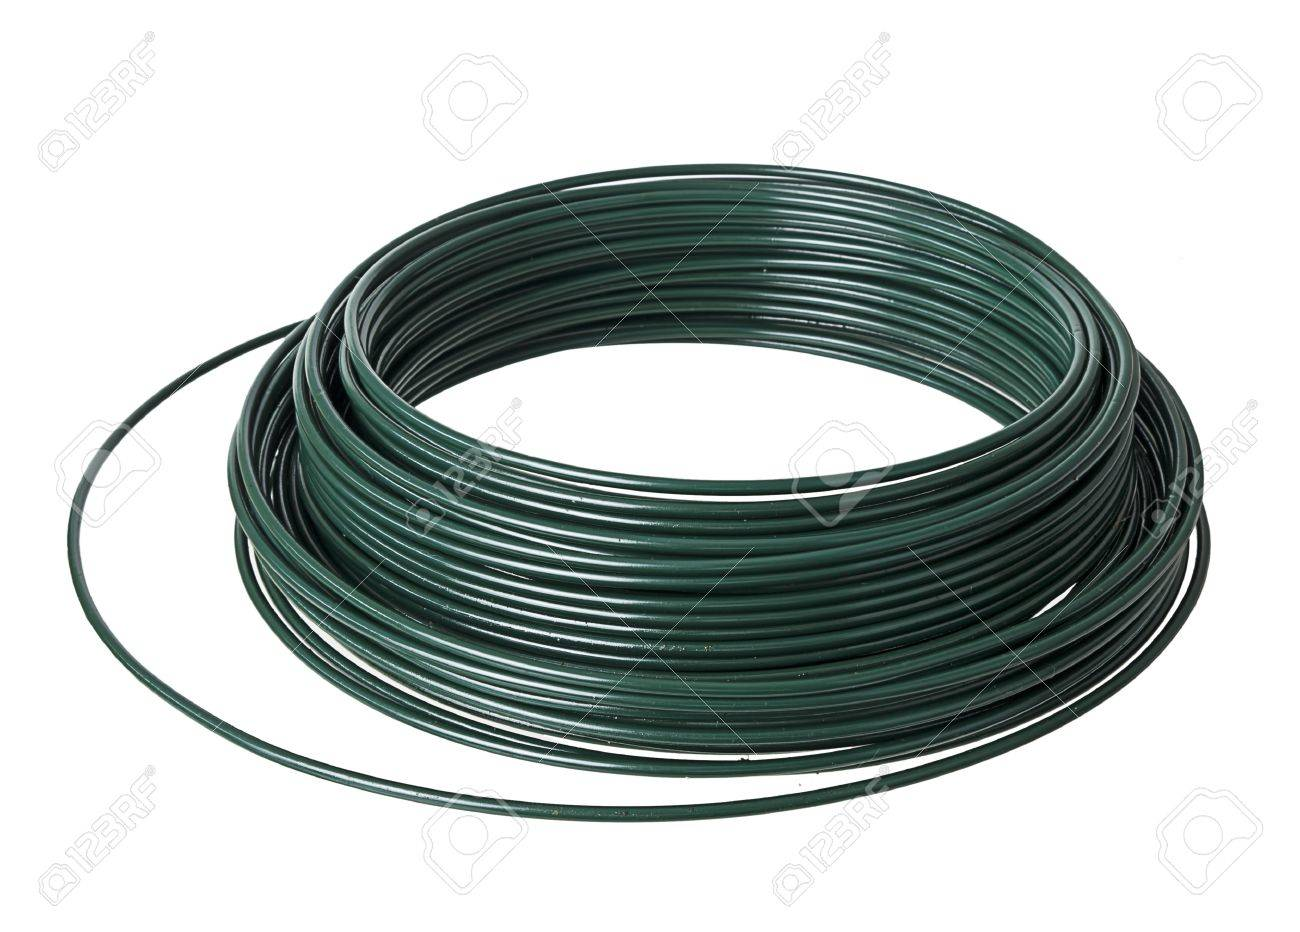 PVC Plastic Coated Wire Coil - Over White Background Stock Photo ...